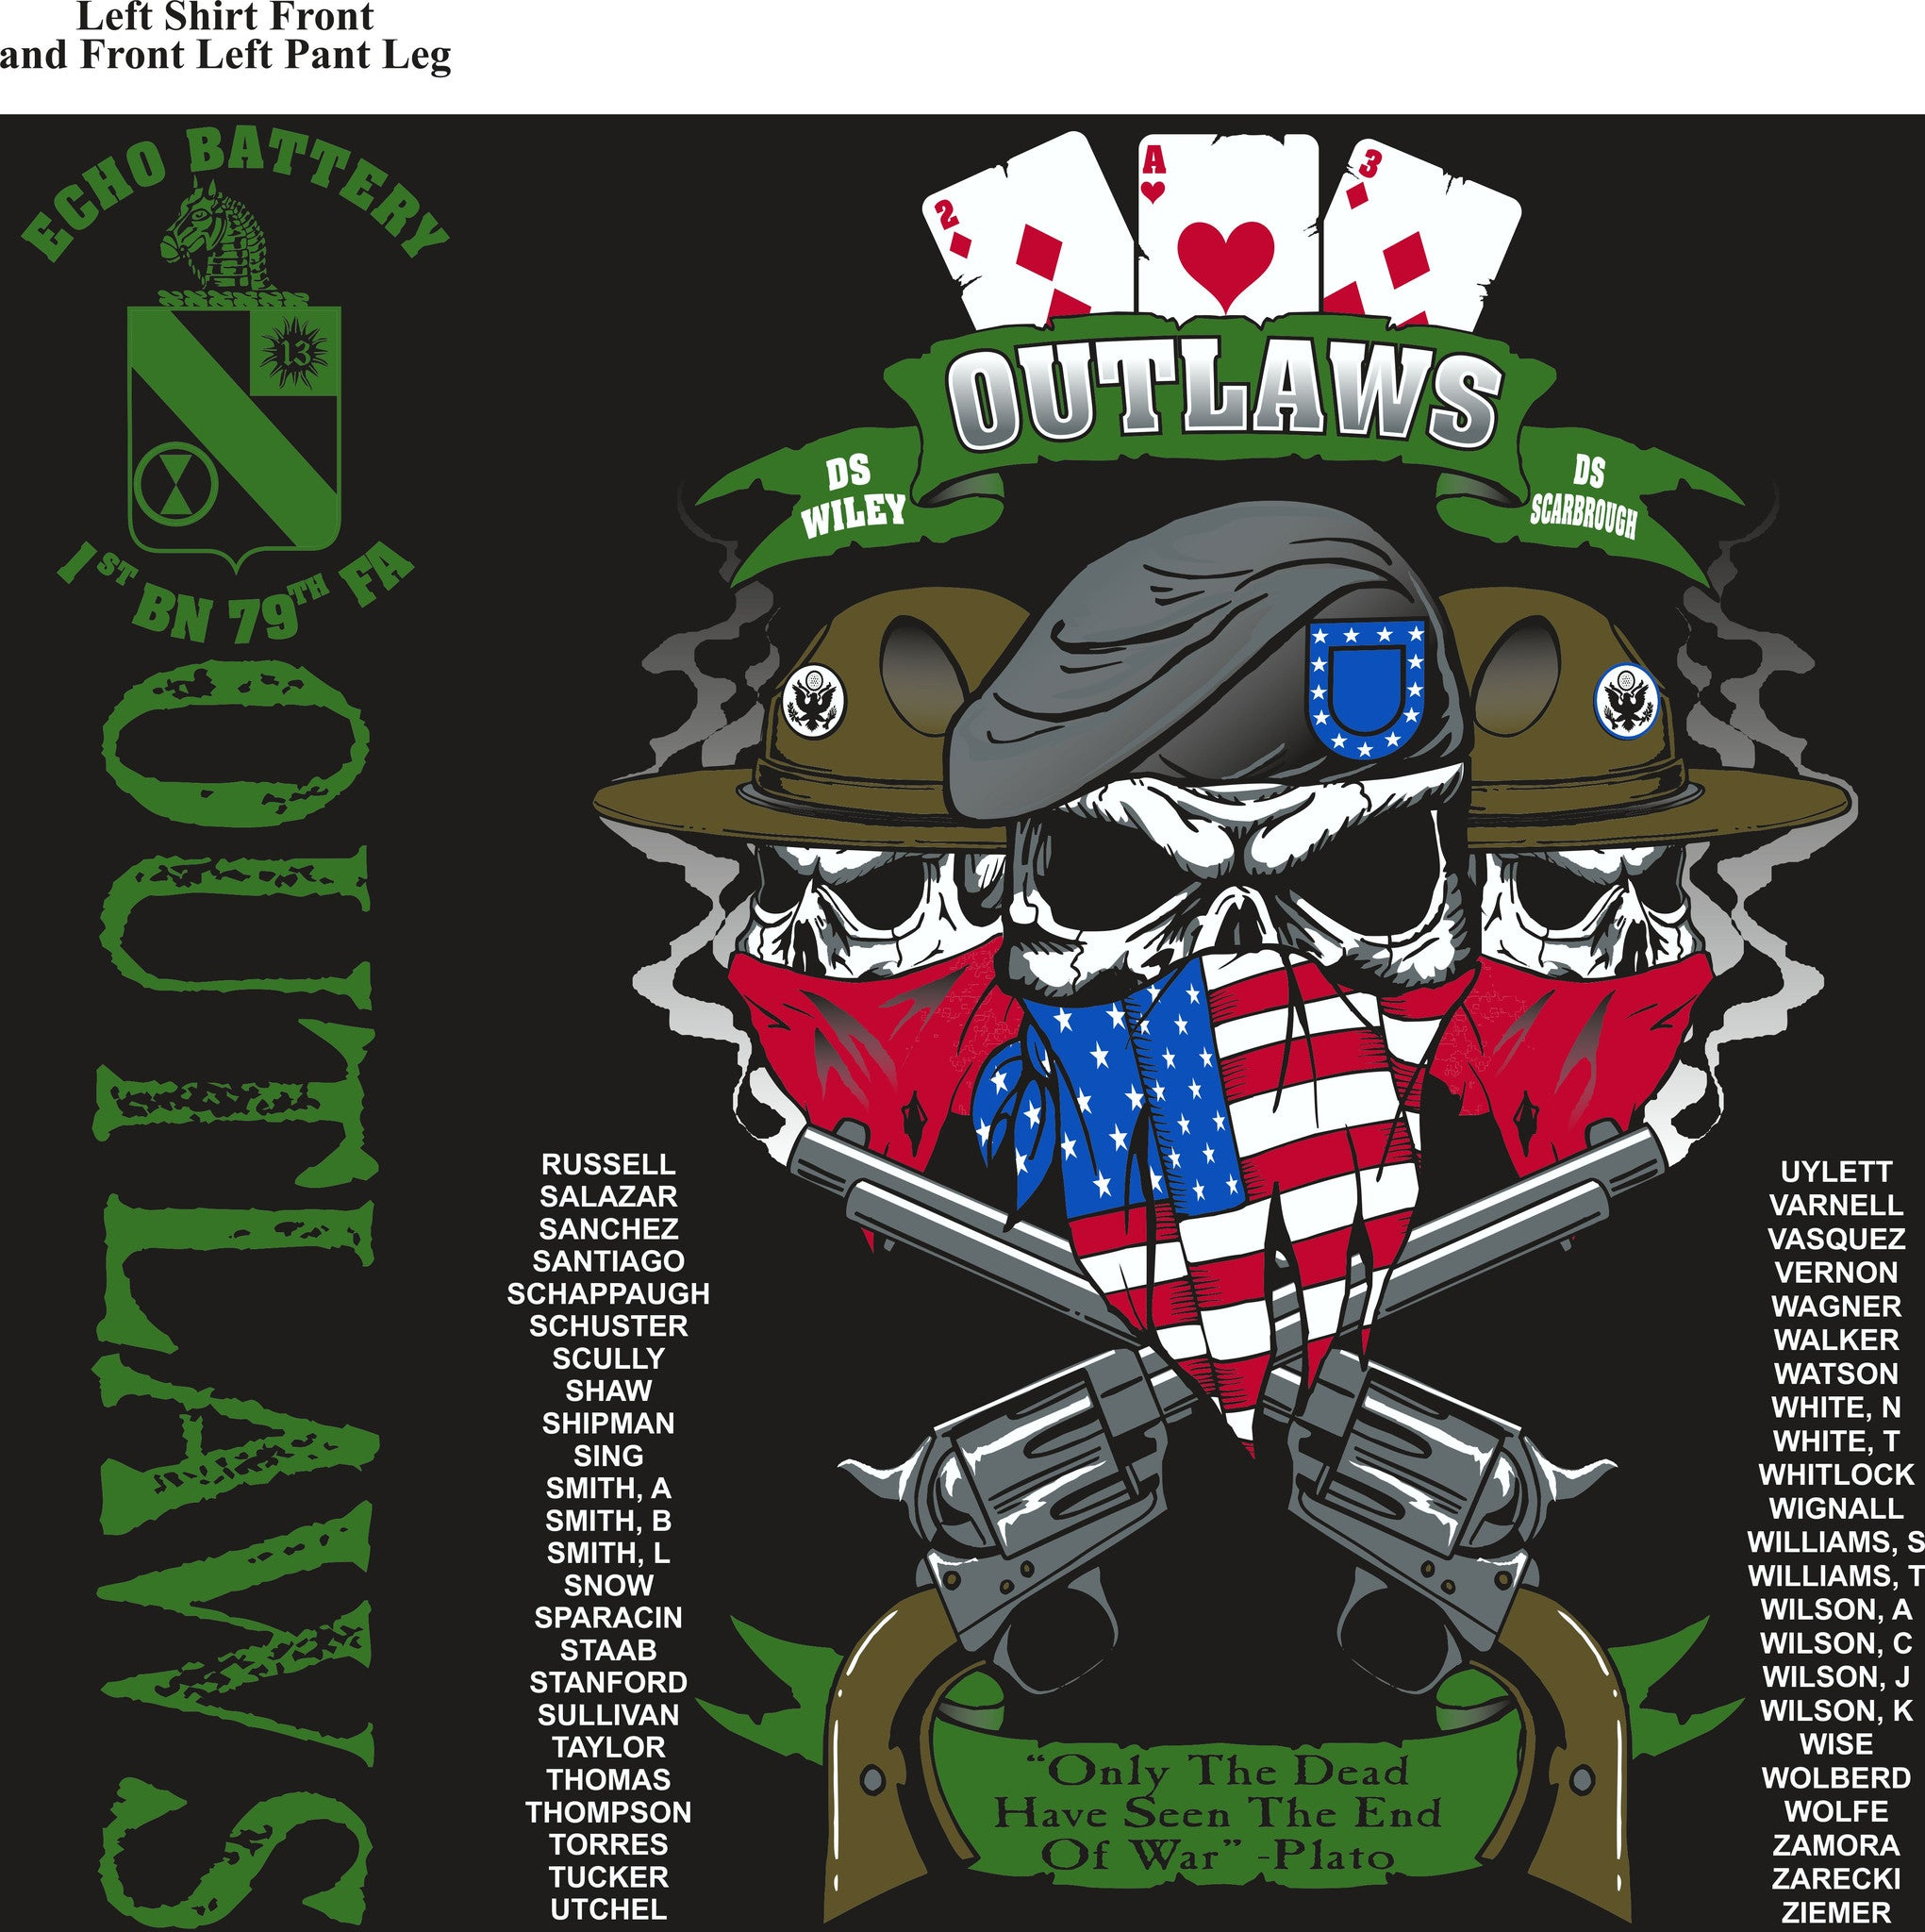 PLATOON SHIRTS (2nd generation print) ECHO 1st 79th OUTLAWS AUG 2016